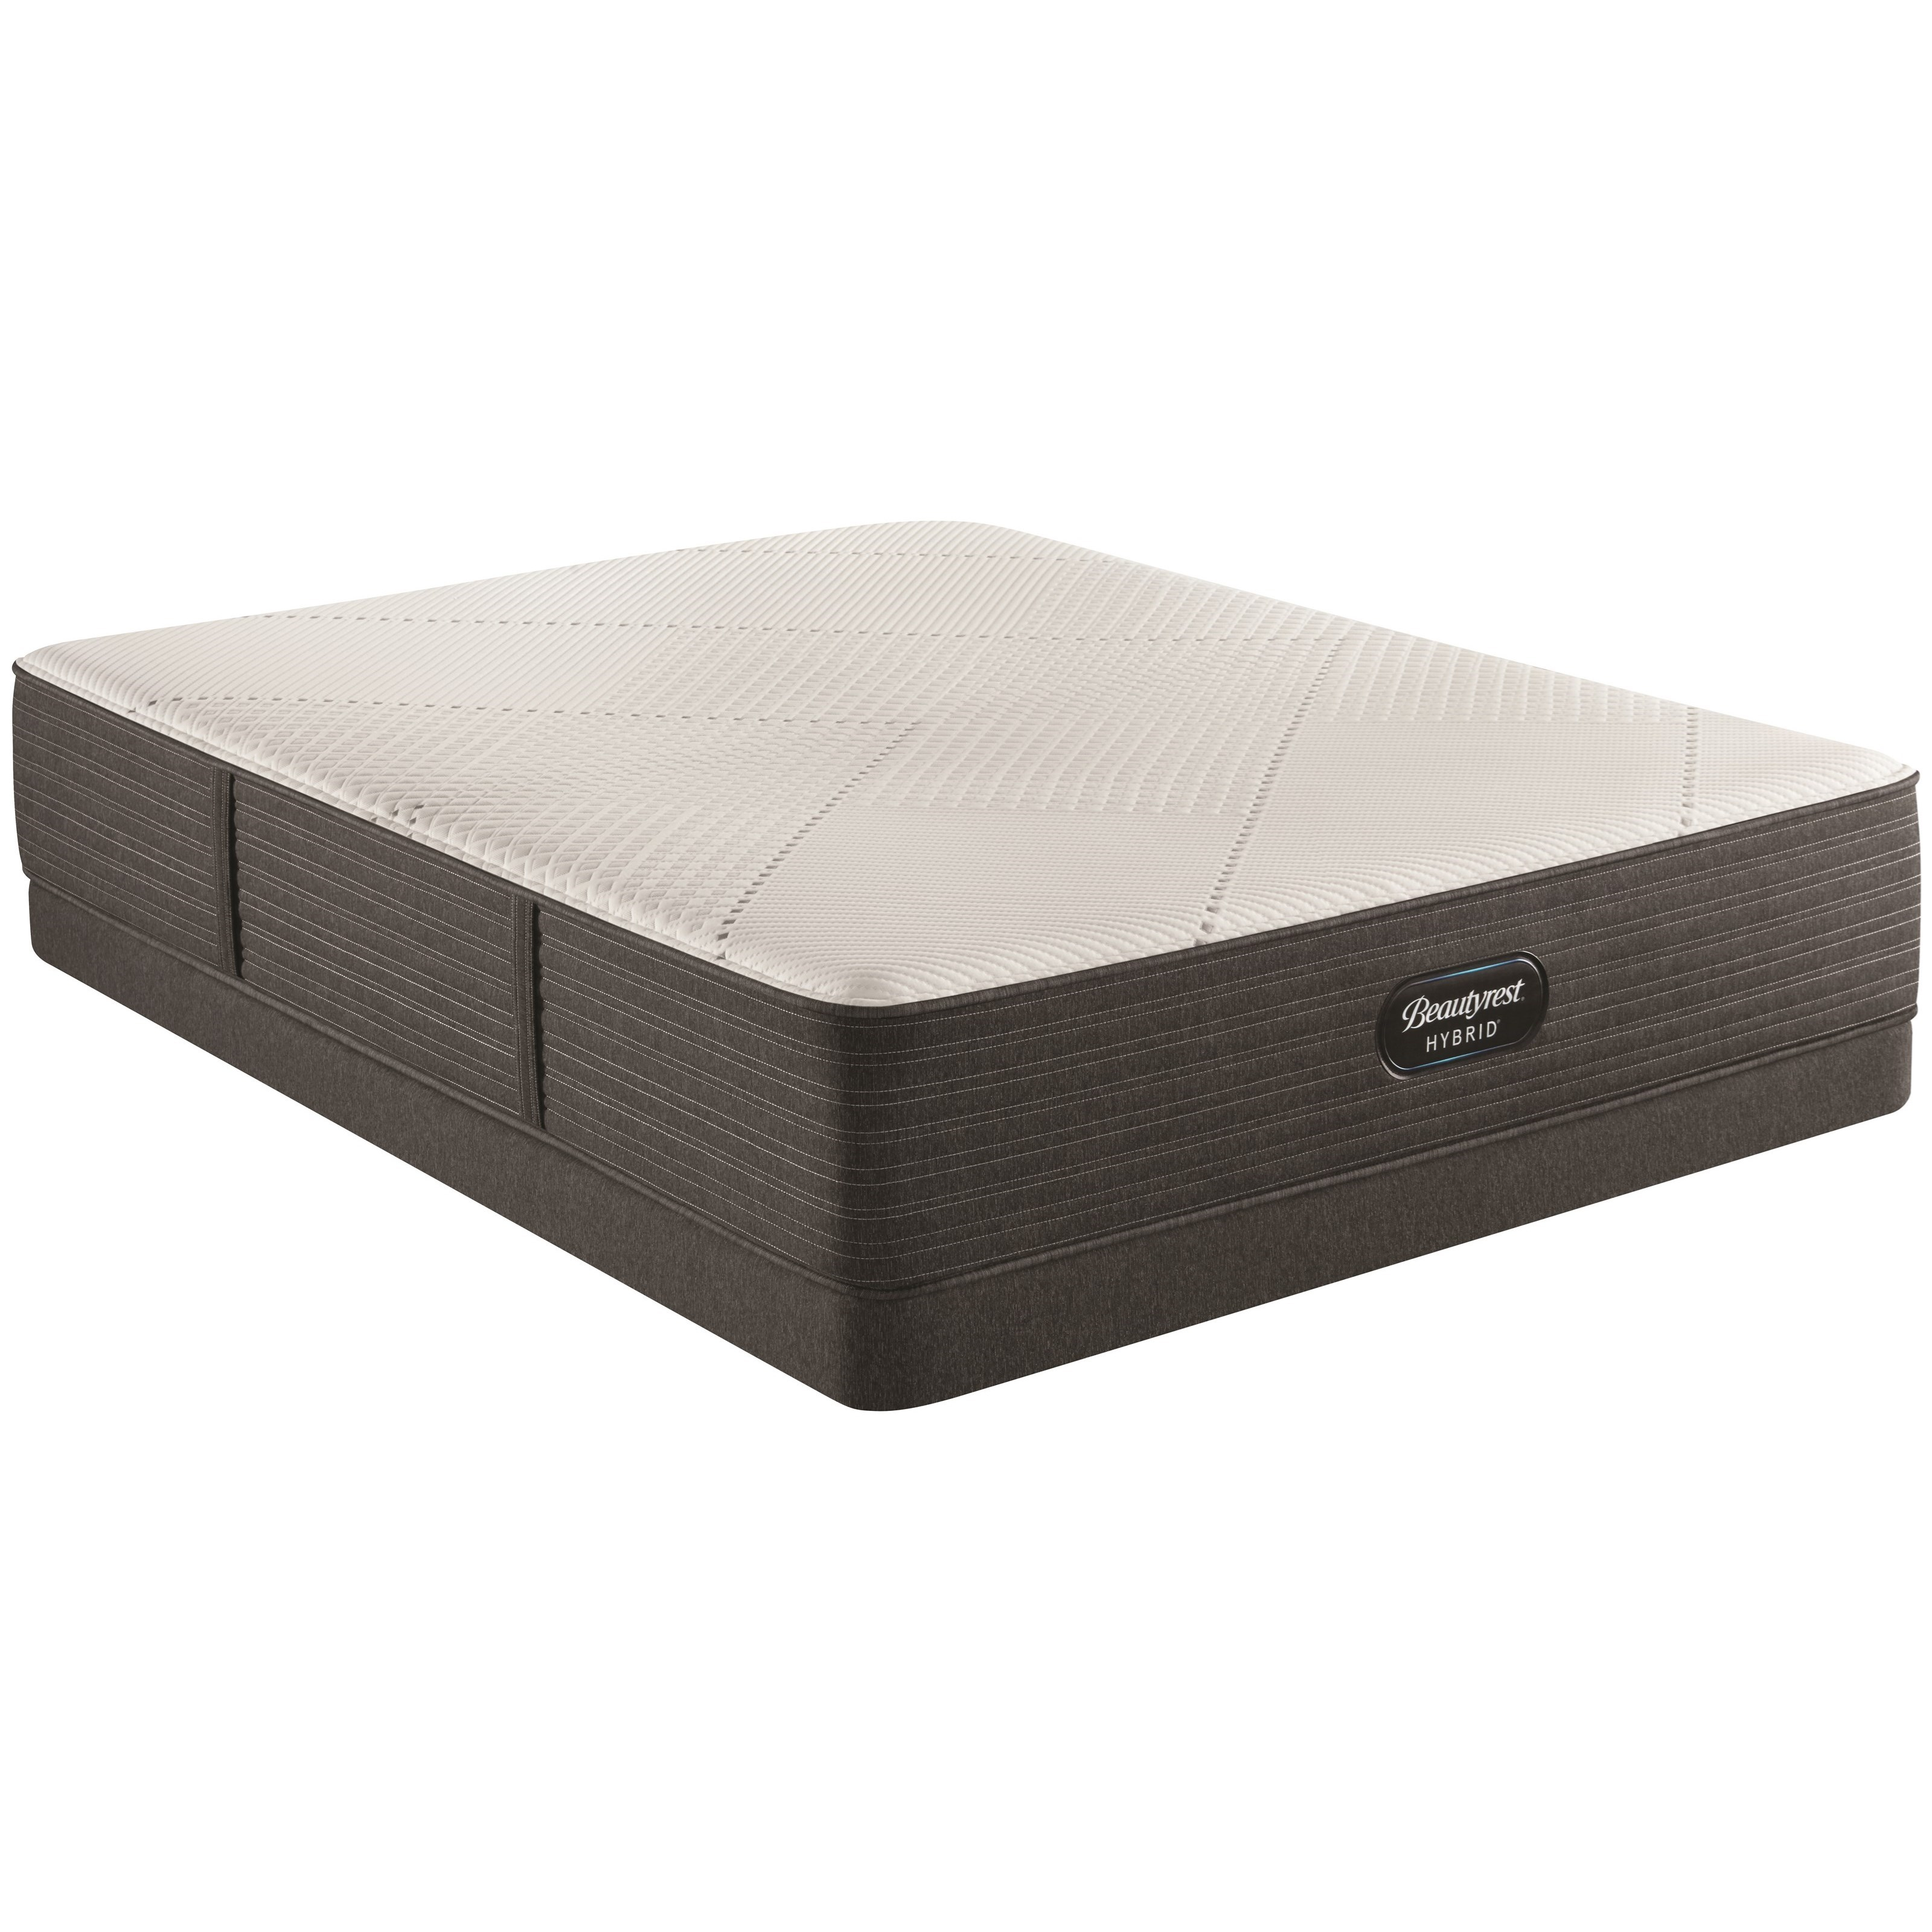 """BRX1000-IP Extra Firm Hybrid Full 13 1/2"""" Hybrid Low Profile Set by Beautyrest at HomeWorld Furniture"""